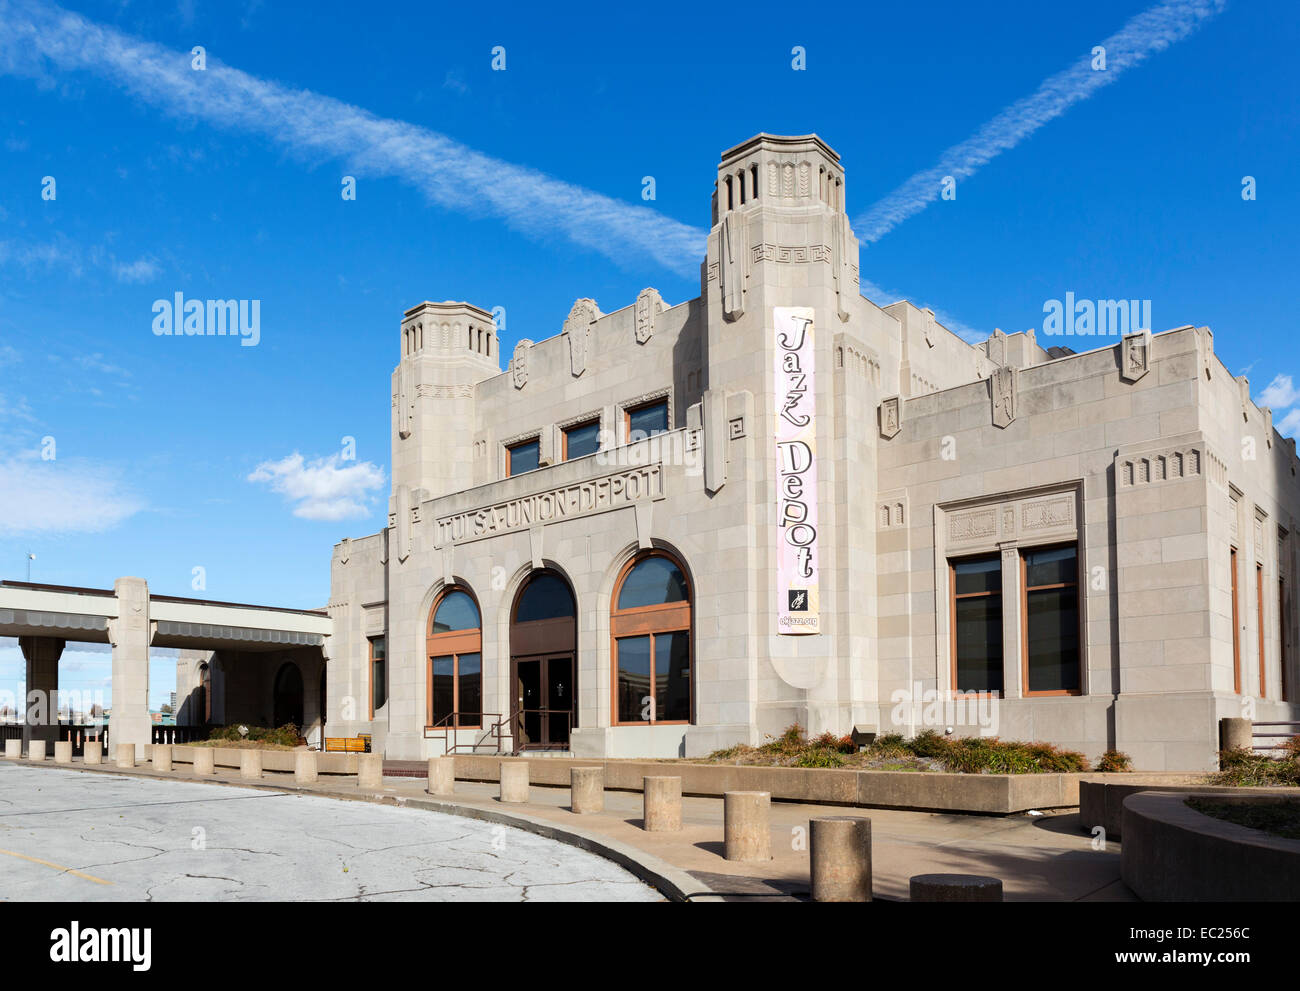 The Art-Deco Tulsa Union Depot, Tulsa, Oklahoma, USA - Stock Image